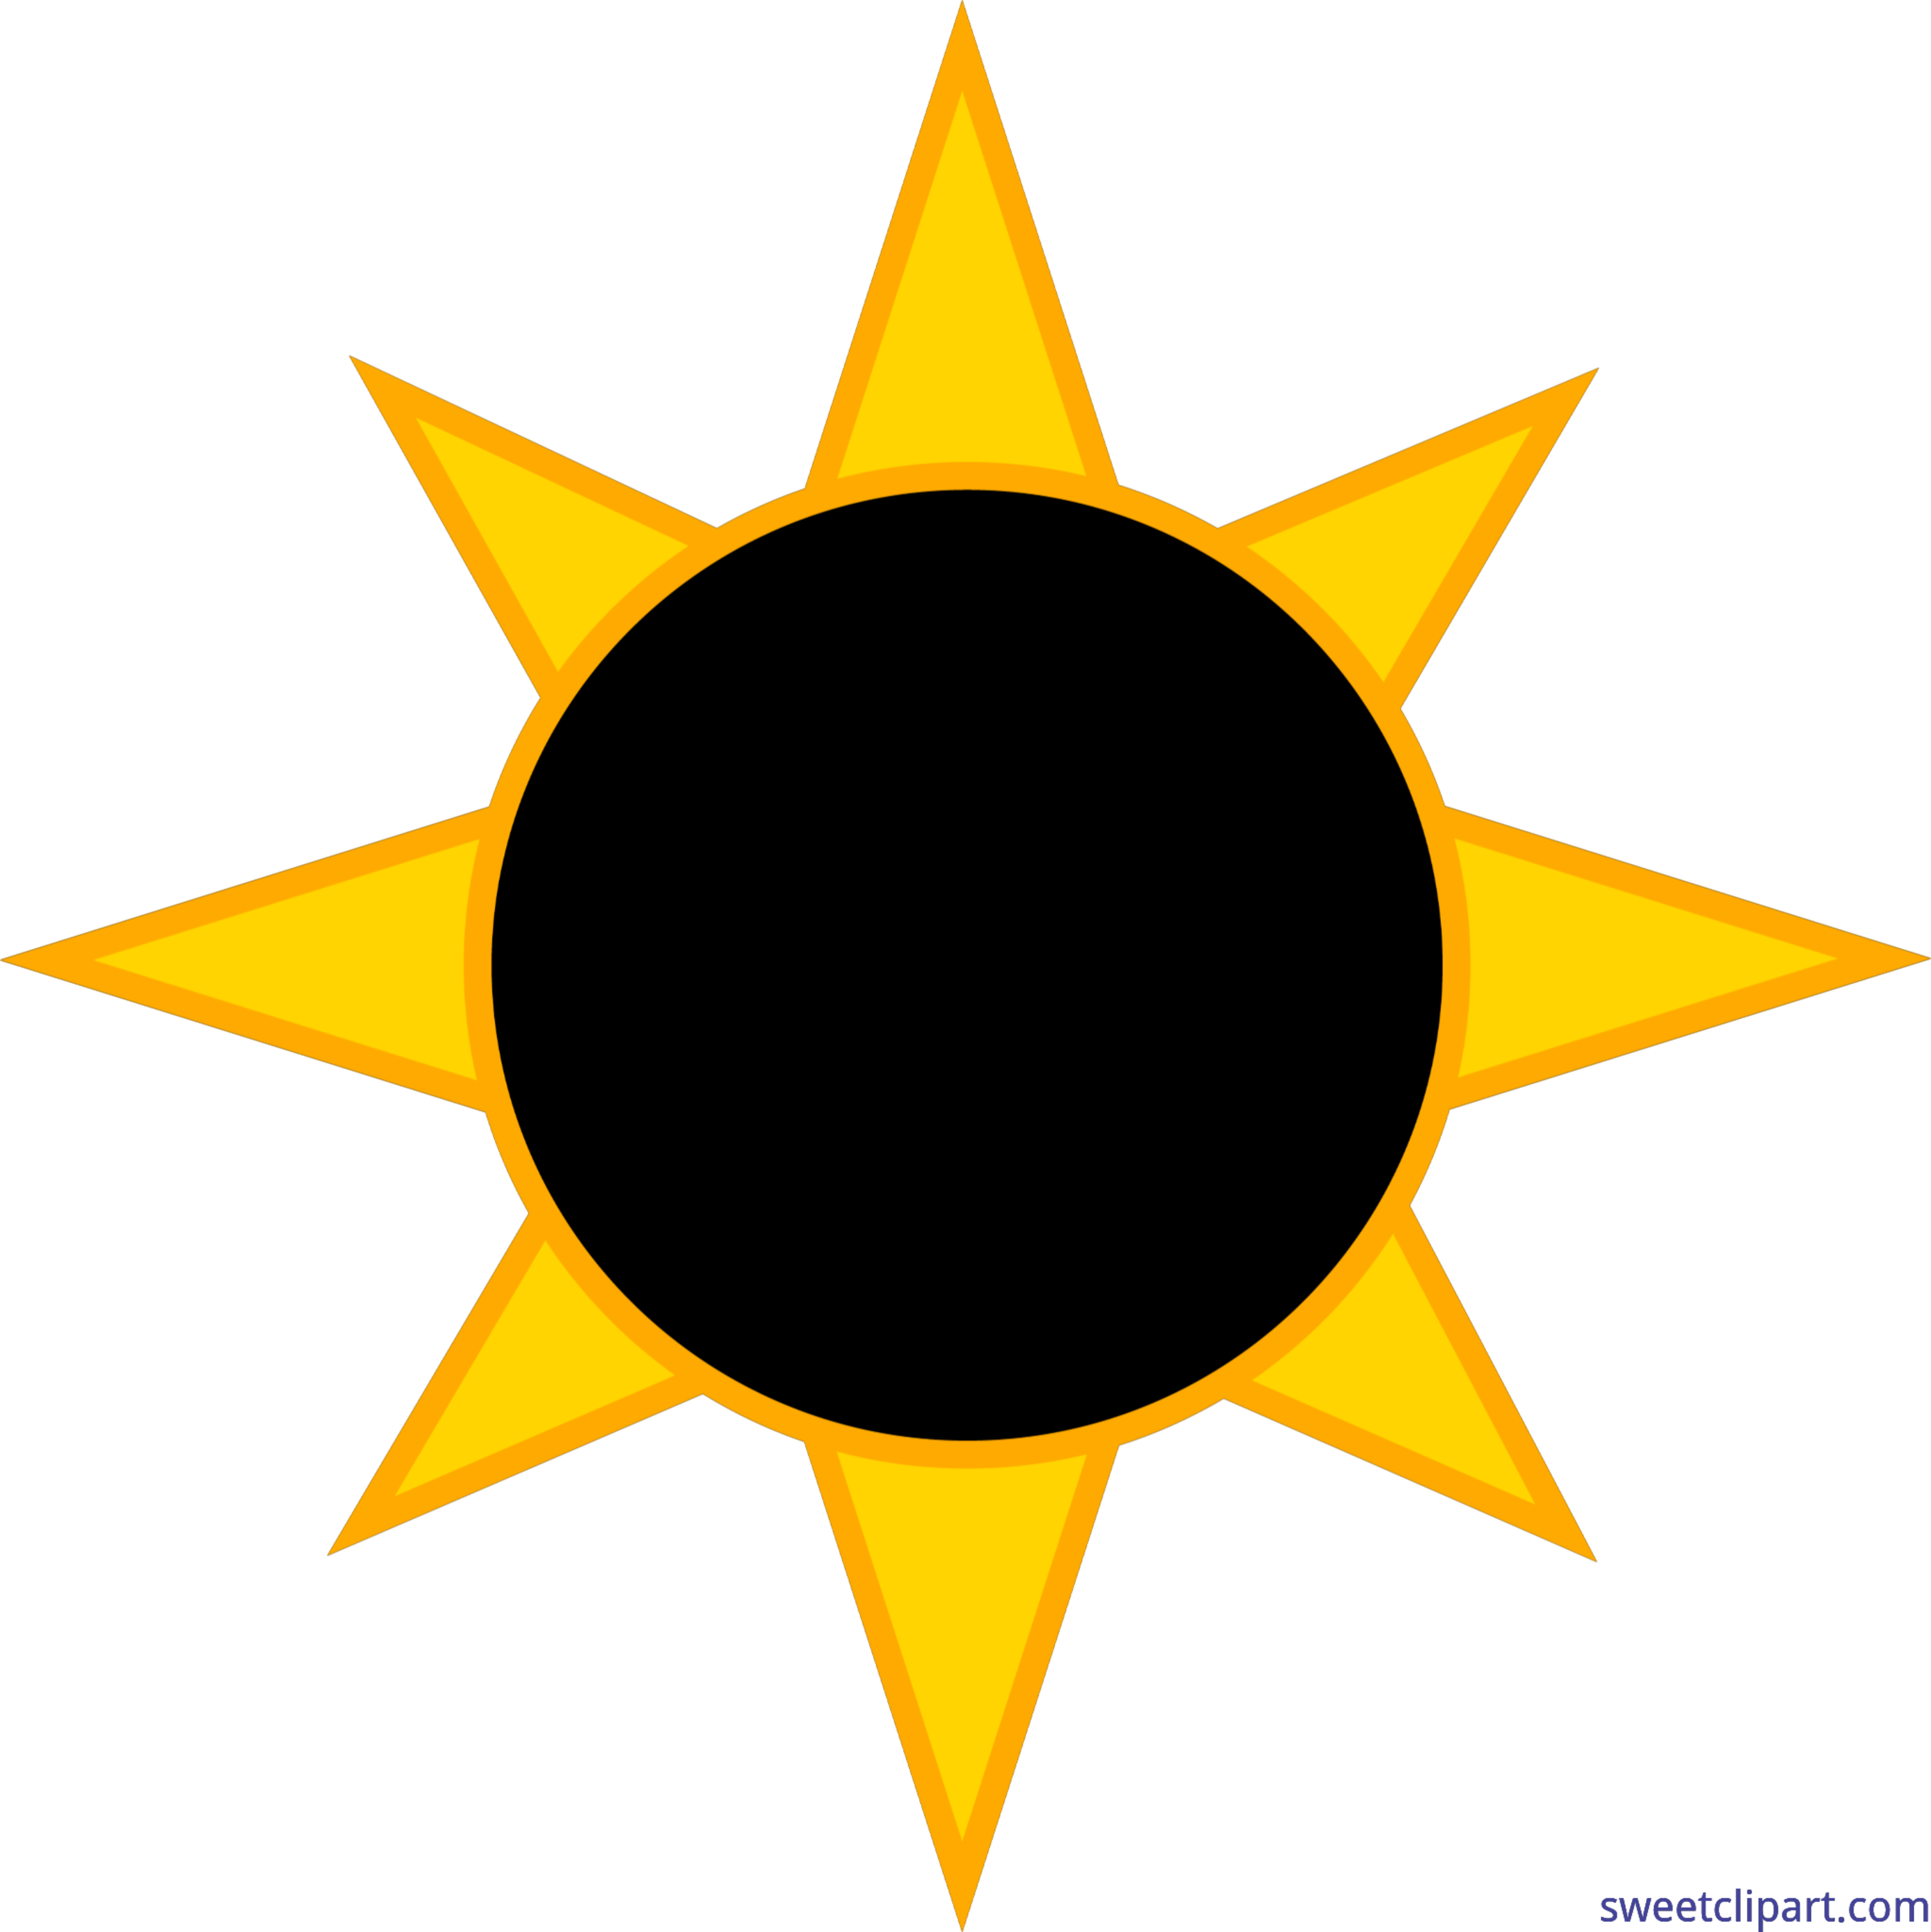 Eclipse clipart icon, Eclipse icon Transparent FREE for download on ... jpg stock